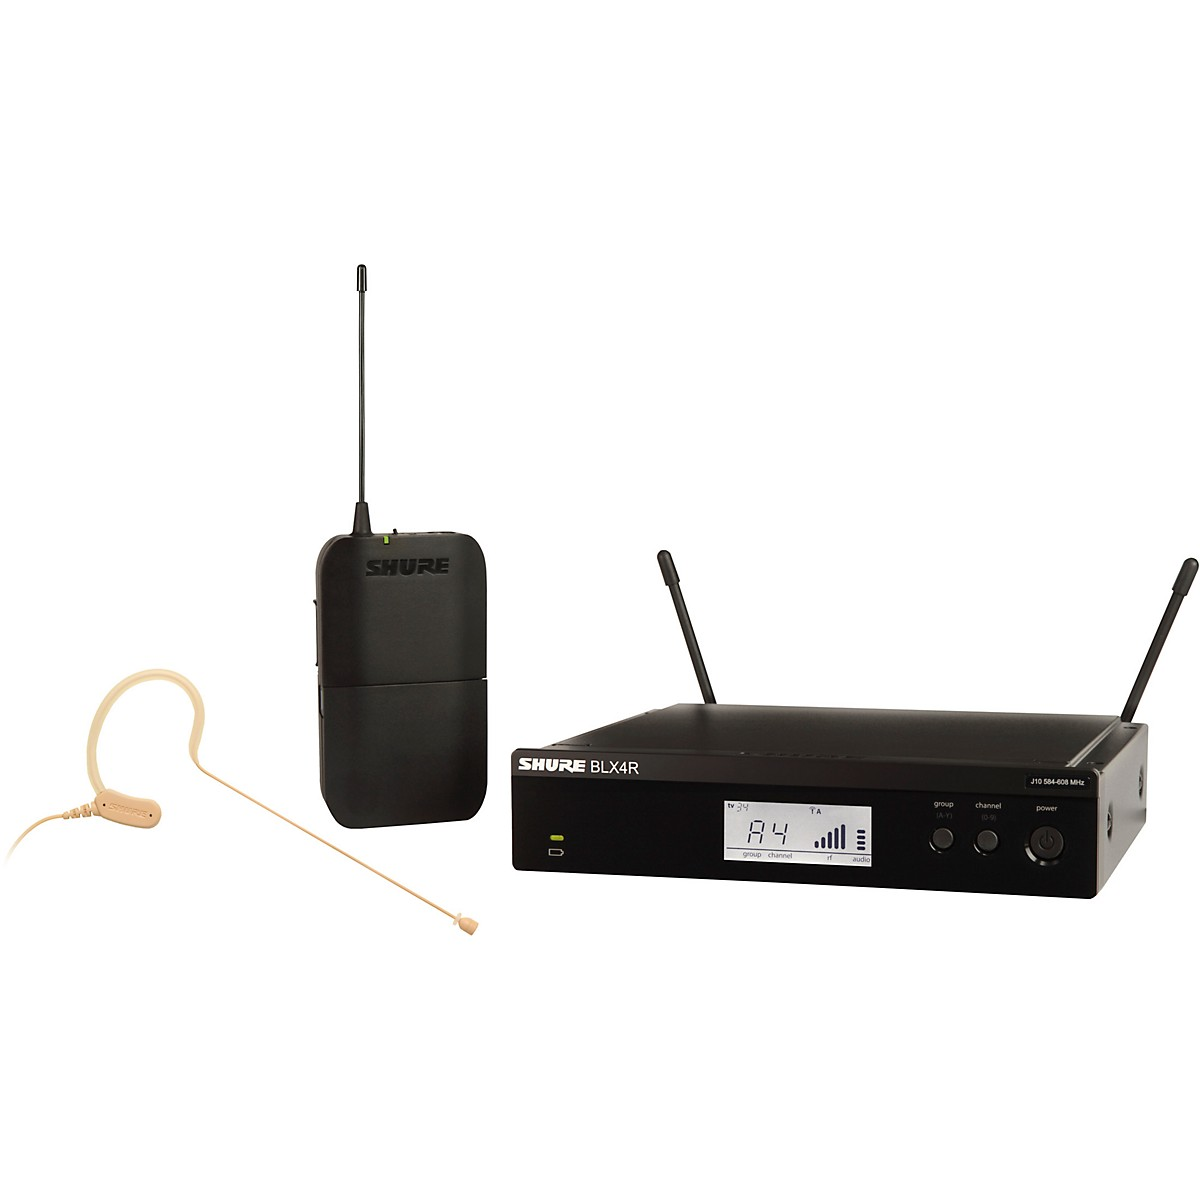 Shure BLX14R/MX53 Wireless Headset System with MX153 Headset Mic